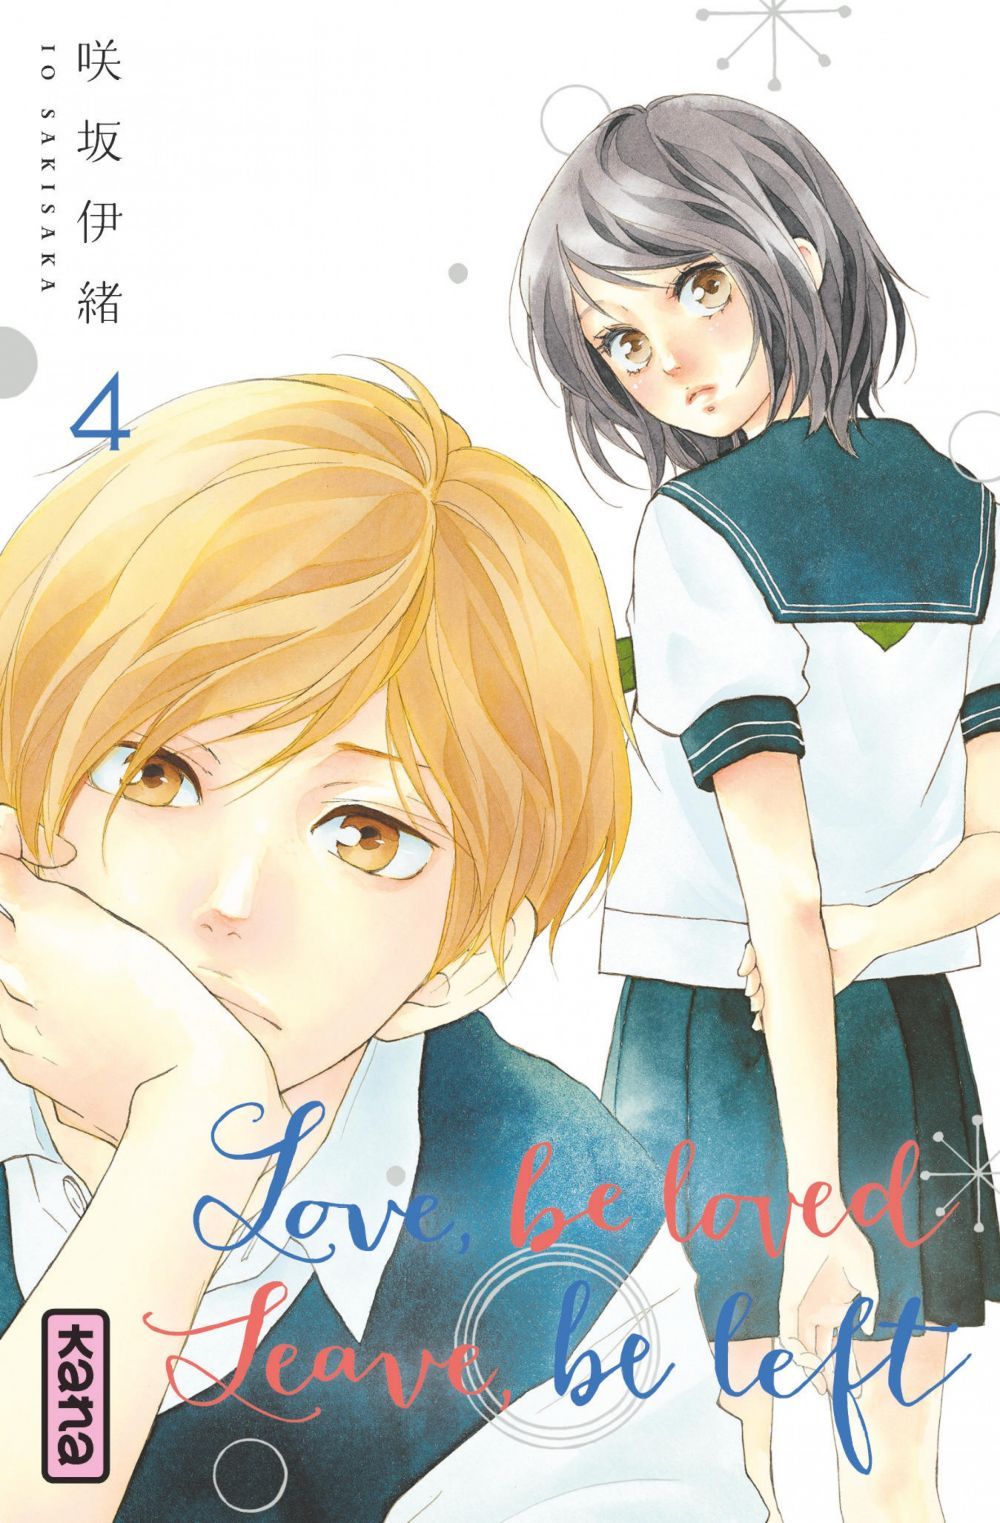 Love, be loved Leave, be left - Tome 4